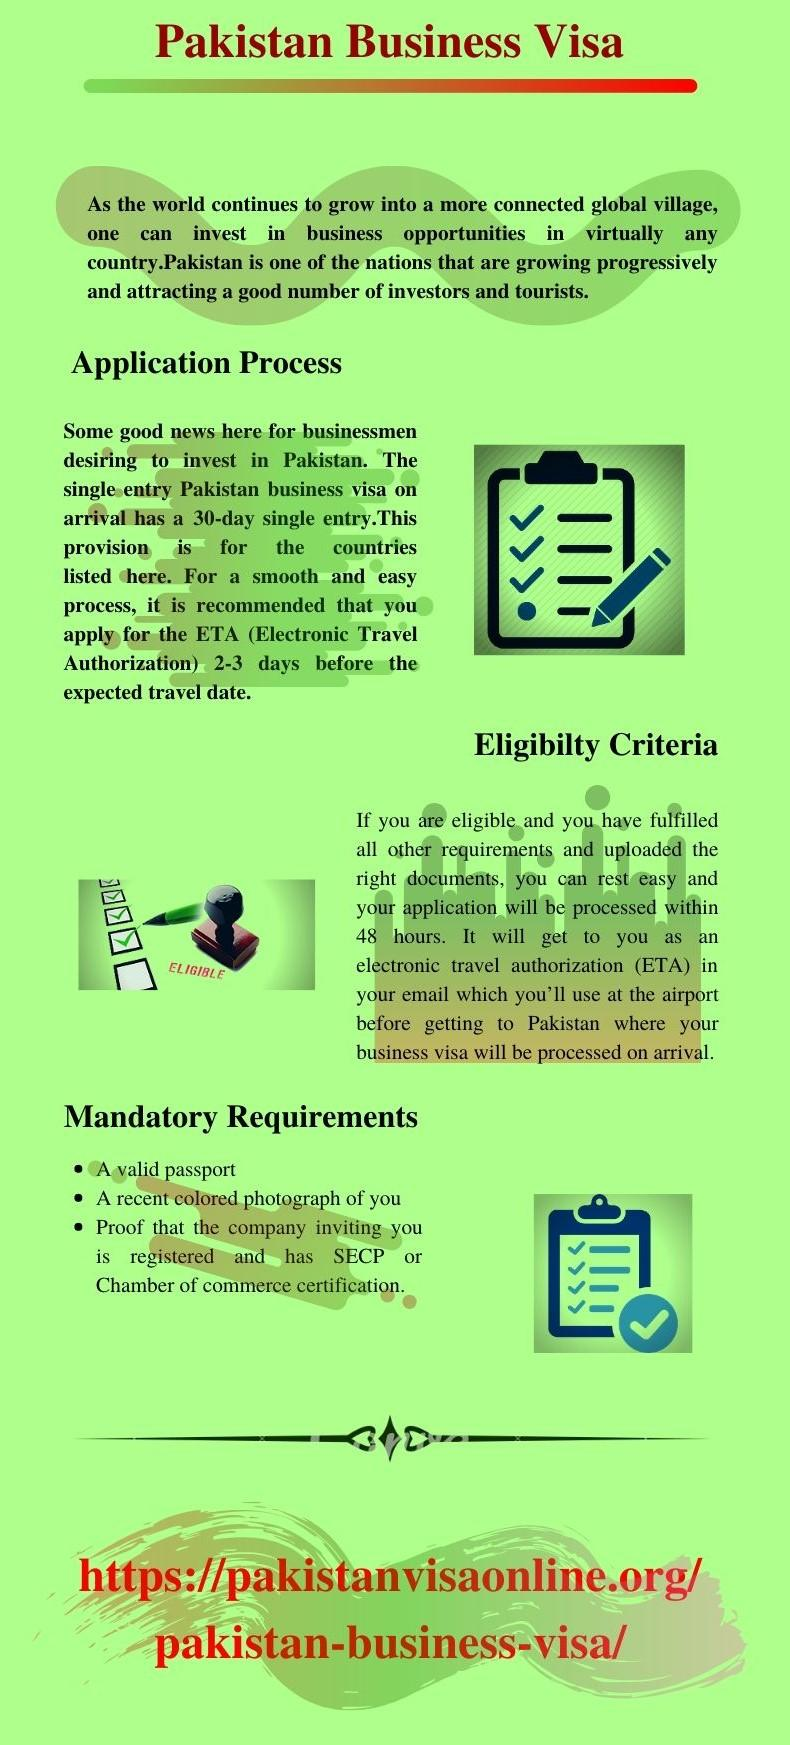 Pakistan Business Visa | Online Business Visa